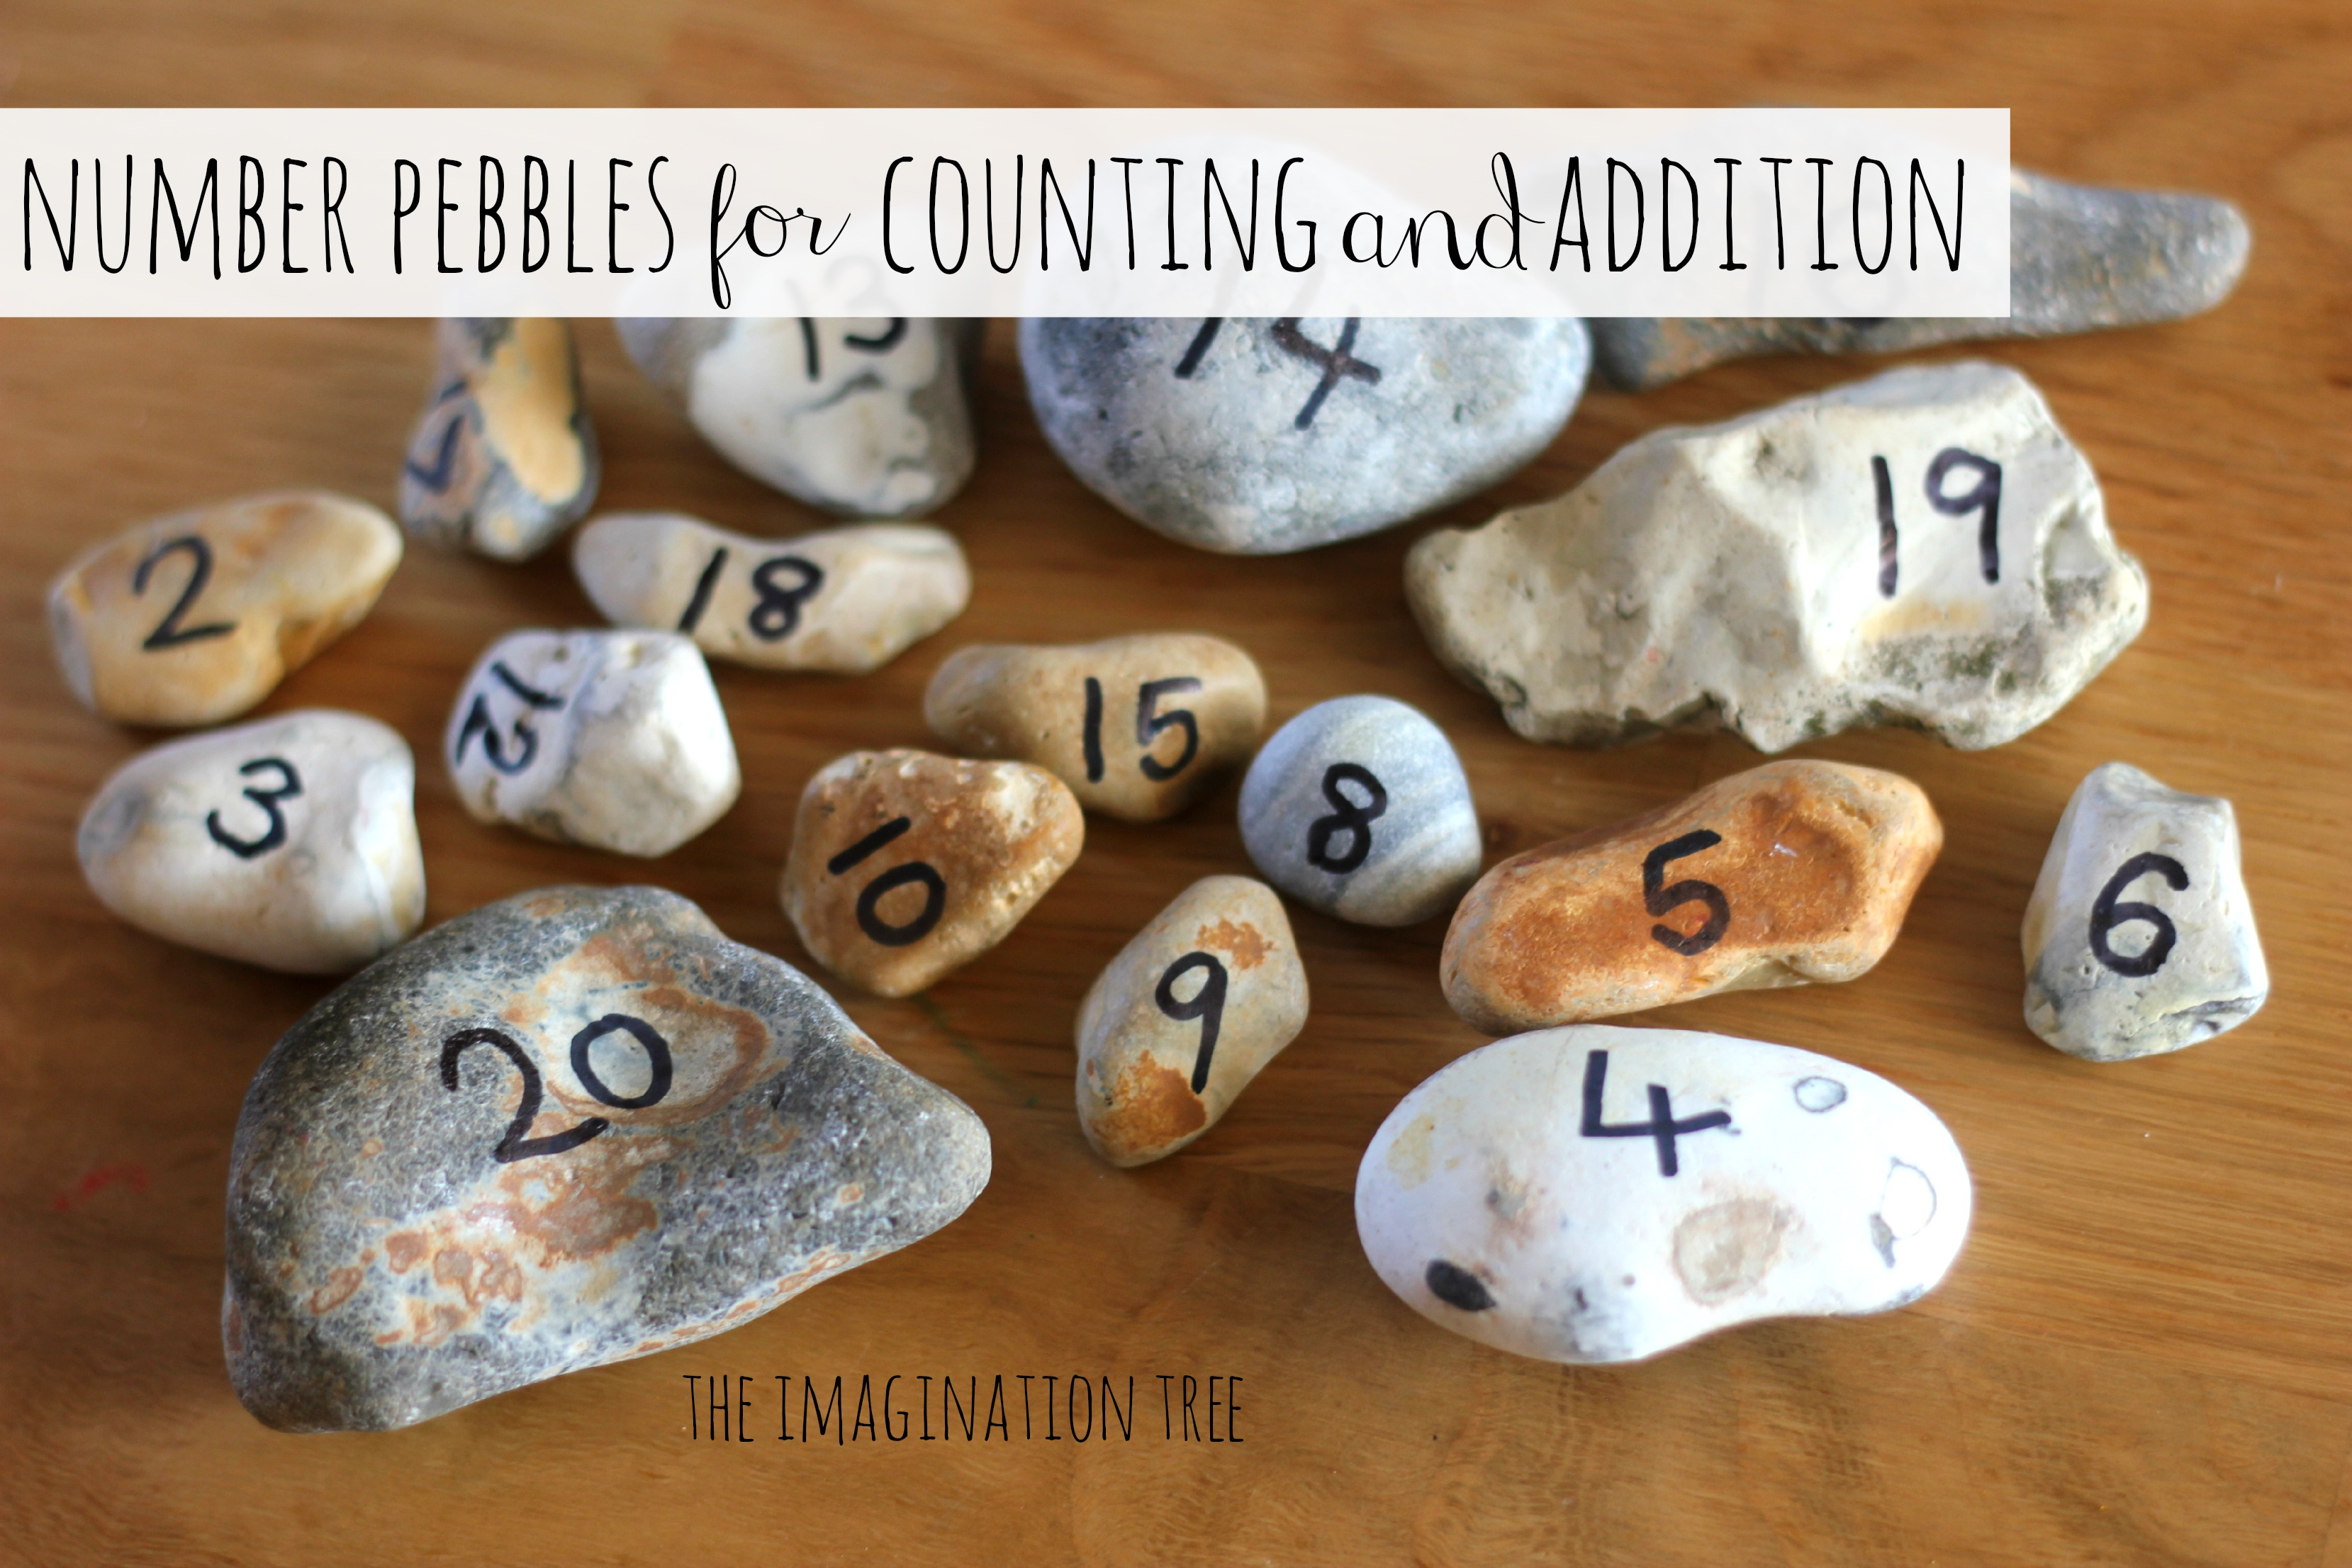 Number pebbles for counting and addition maths activities - The ...